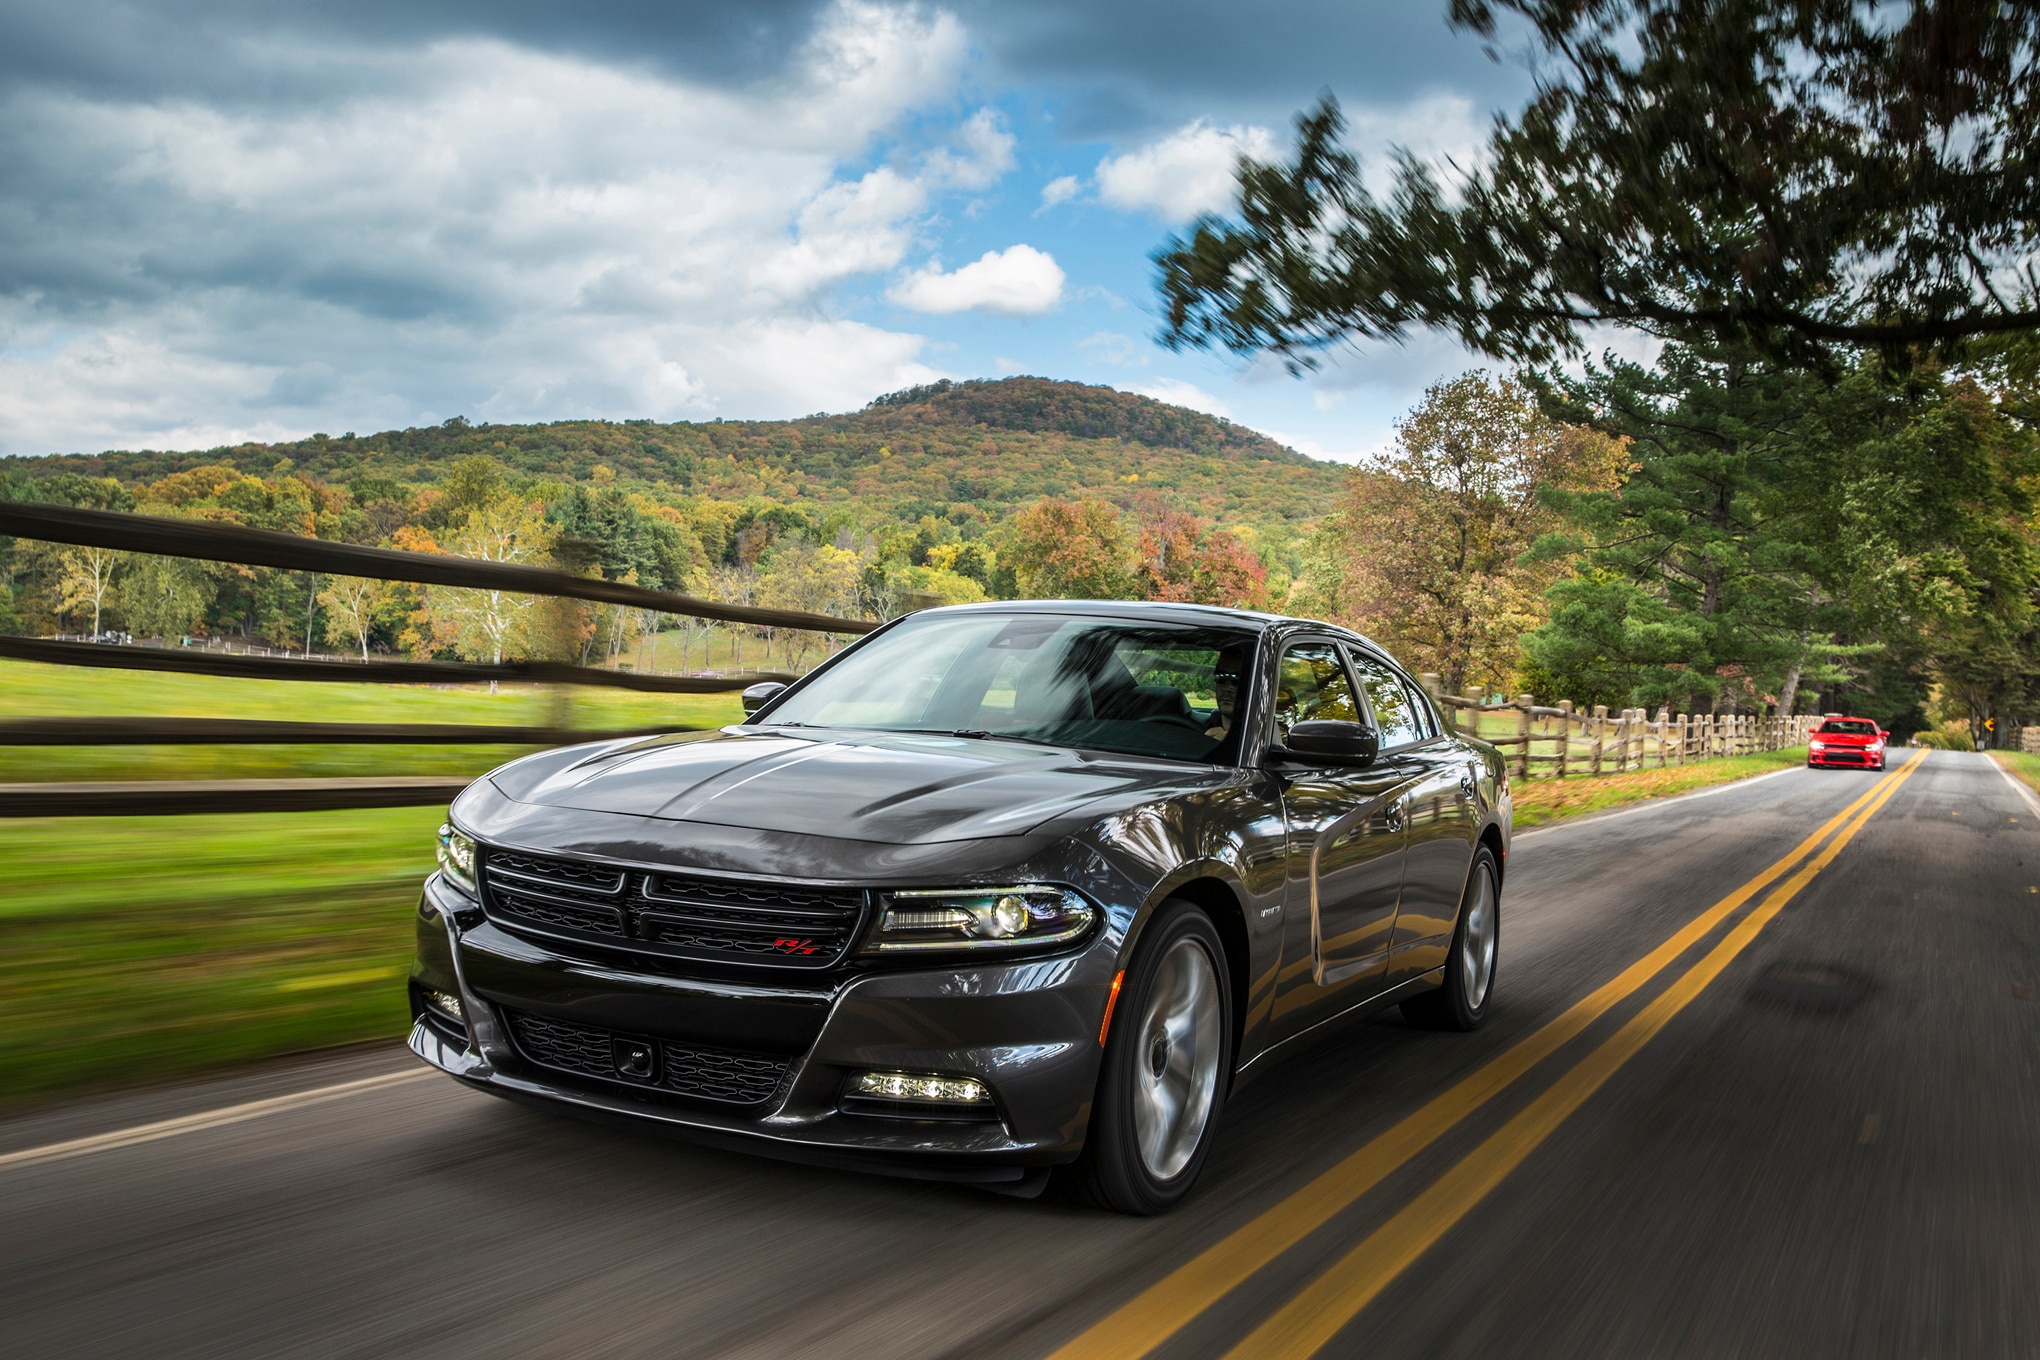 2016 Dodge Charger R/T Scat Pack Quick Take Review ...